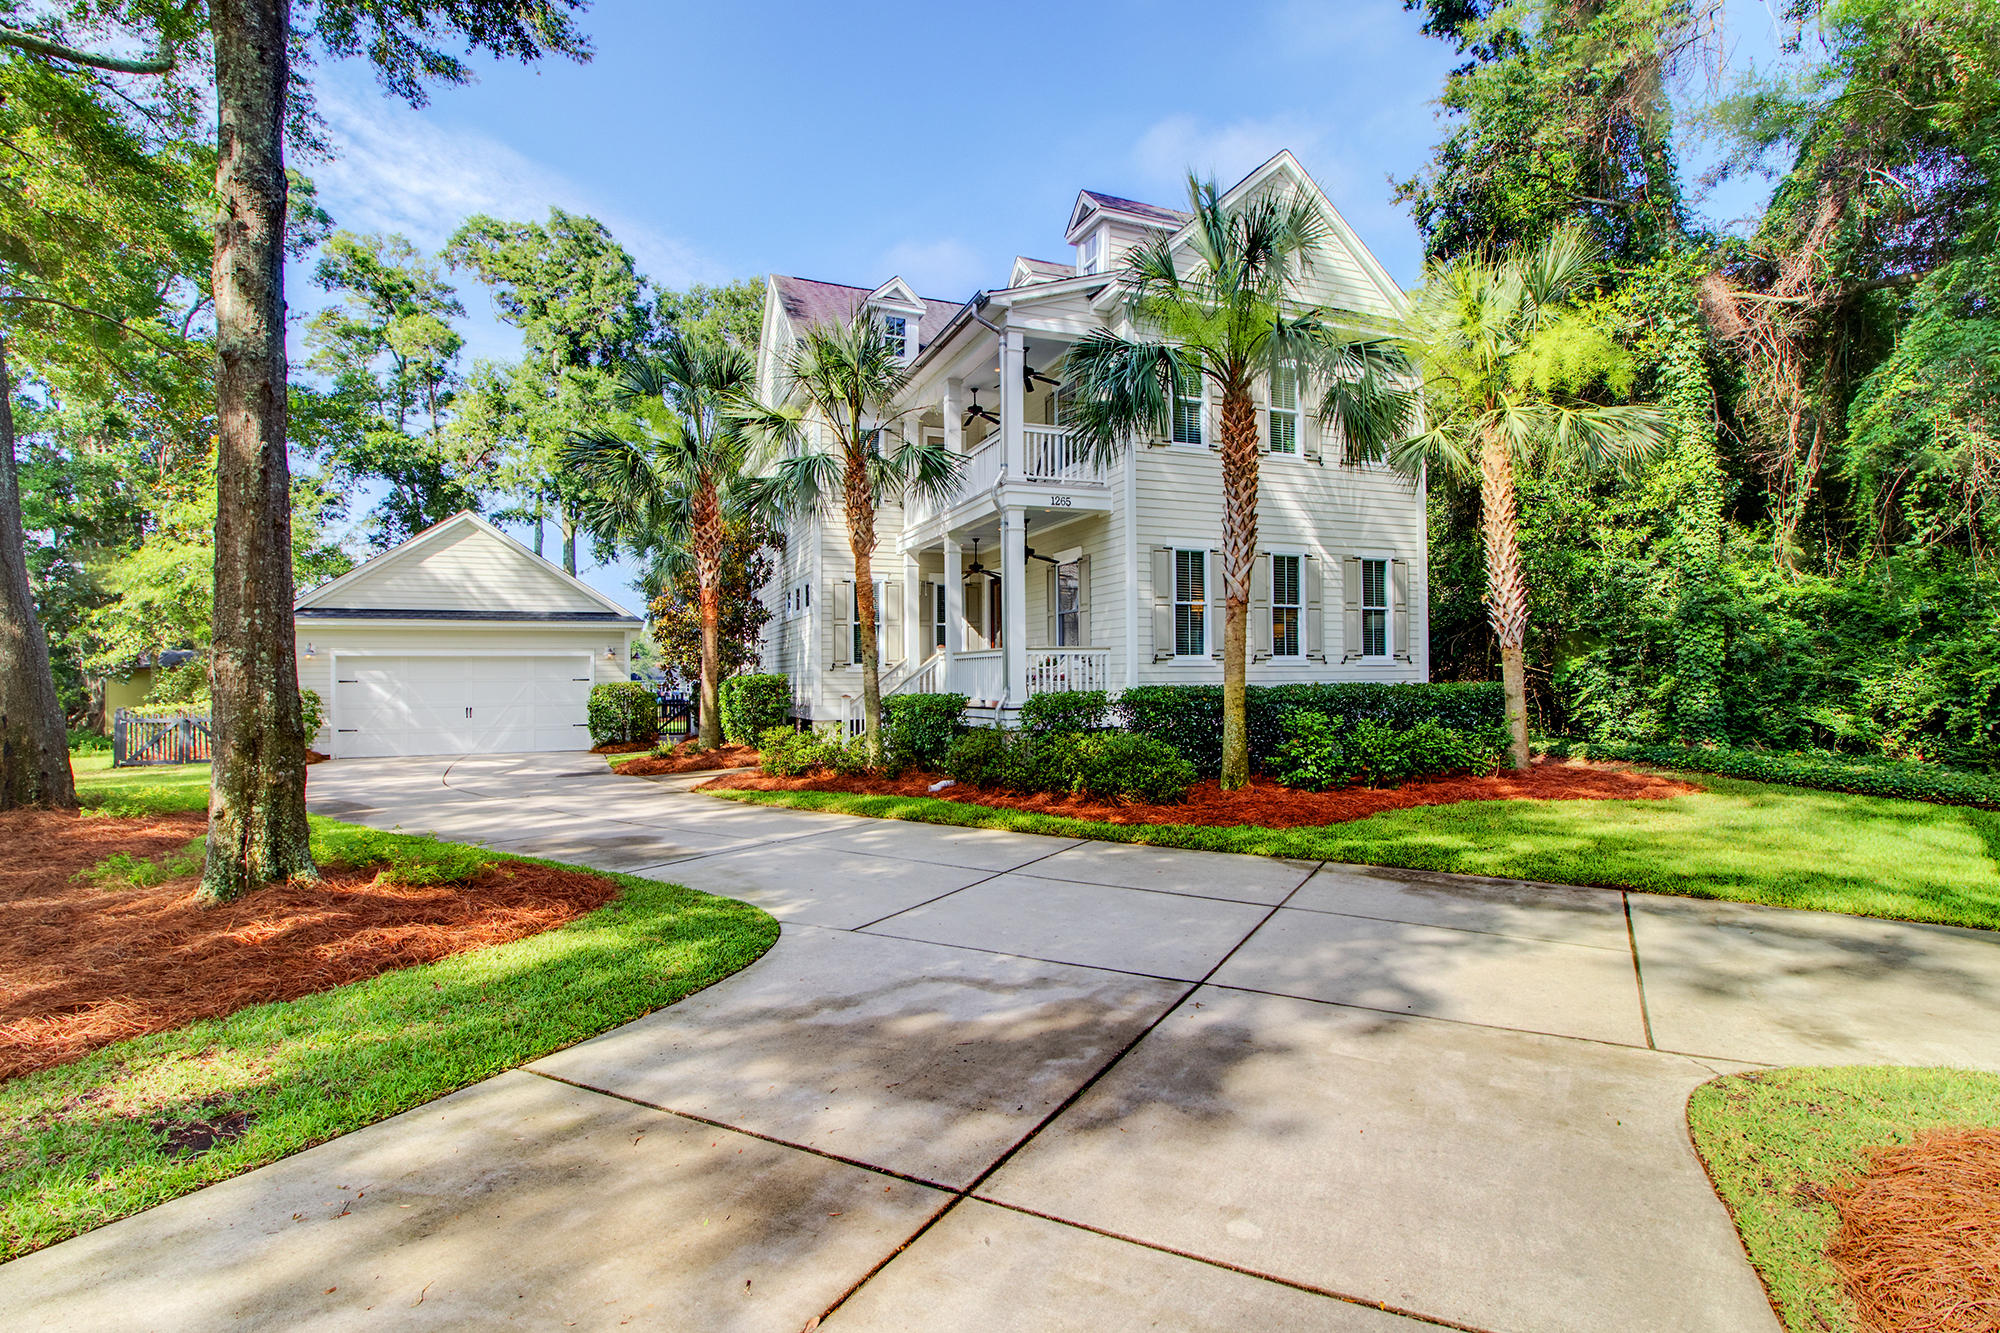 Photo of 1265 Midvale Ave, Charleston, SC 29412